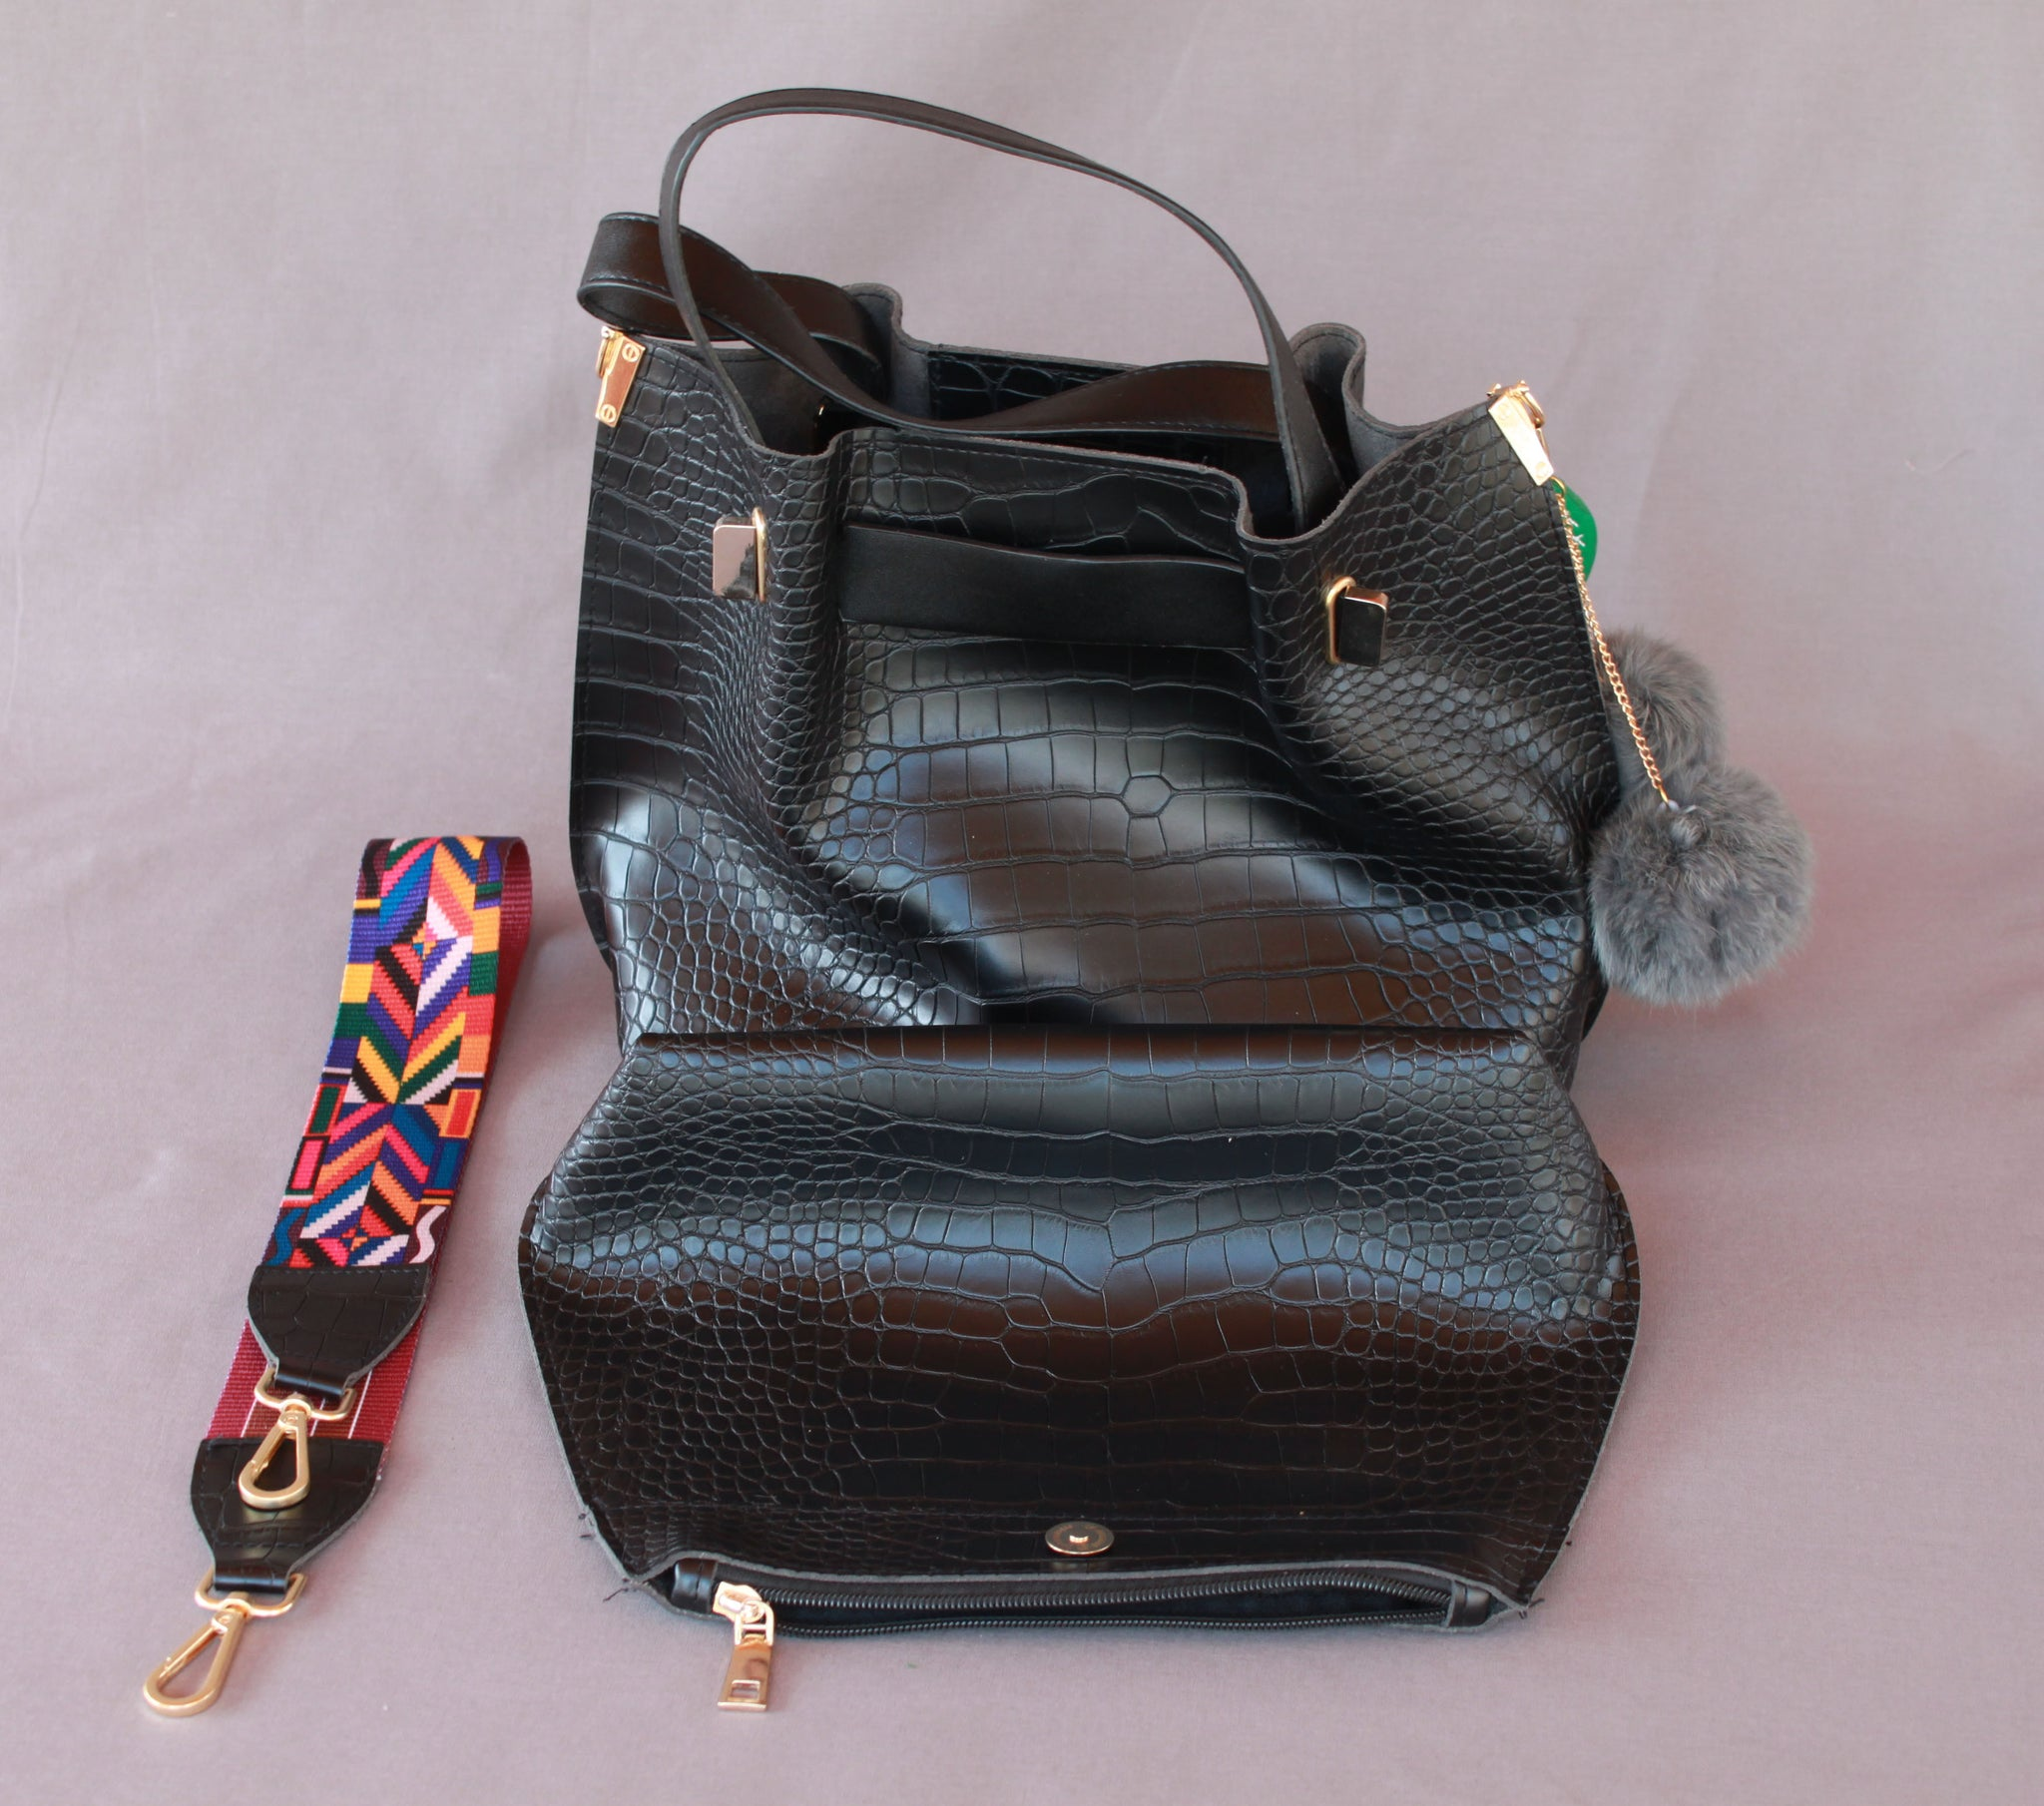 The Terayama Faux Snakeskin Bag